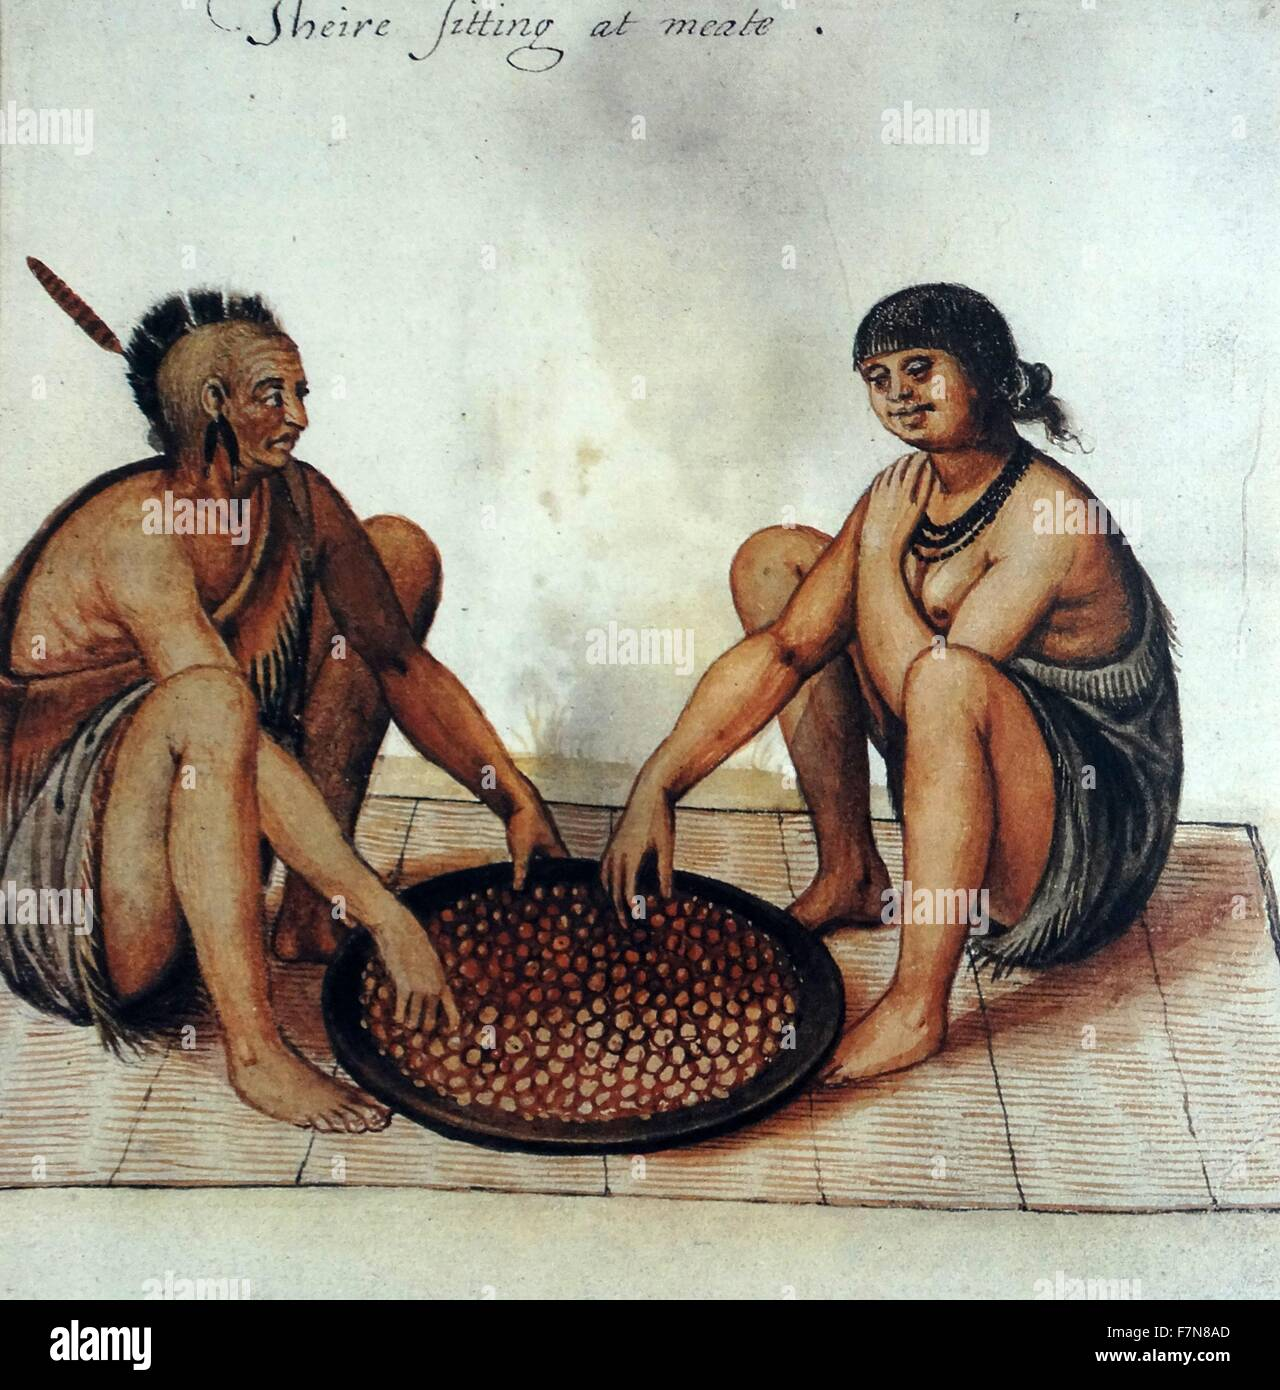 Watercolor drawing 'Native american indians eating corn' by John White (created 1585-1586). - Stock Image